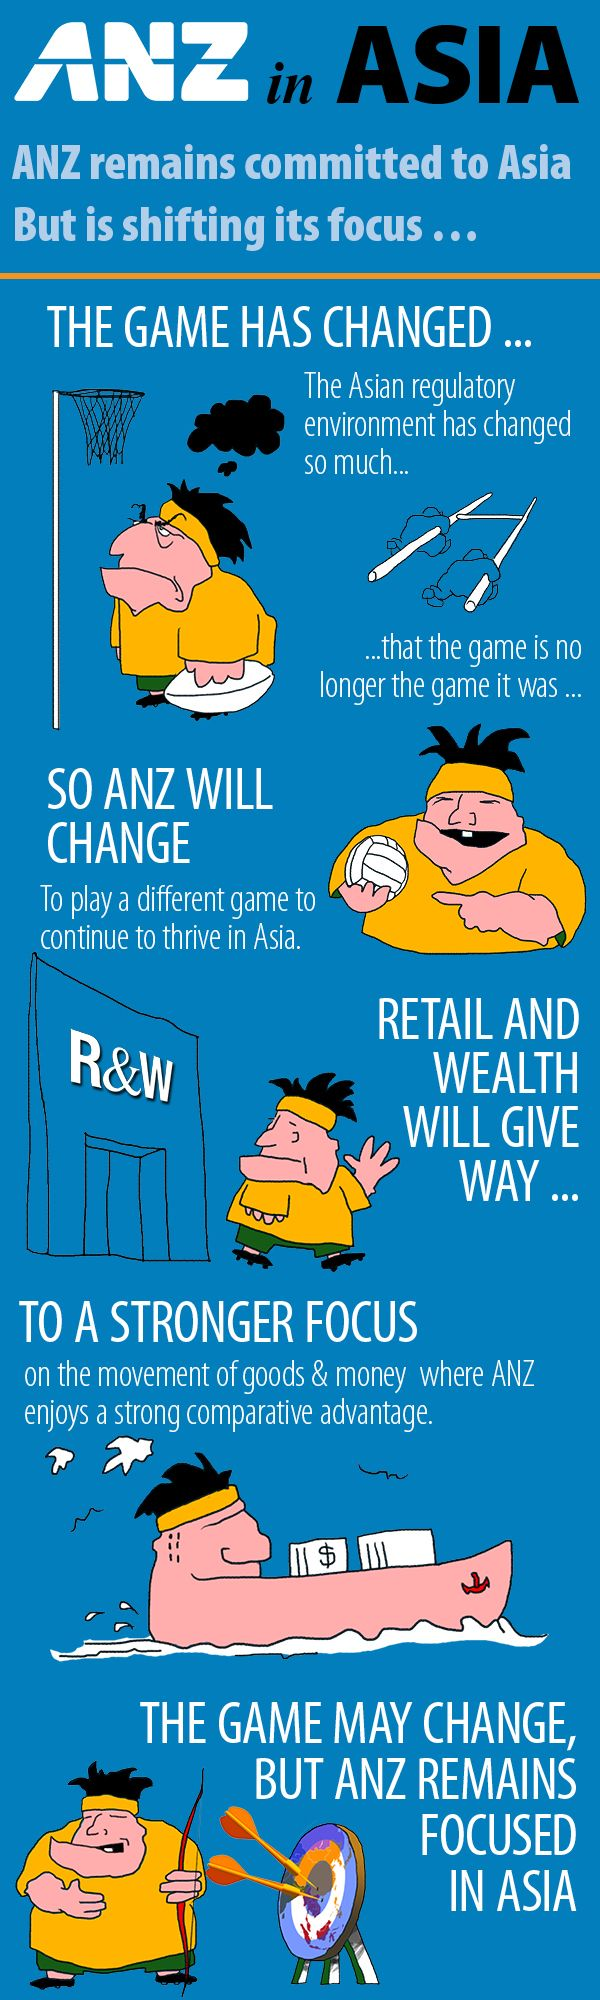 Infographic: ANZ - Change of Focus in Asia